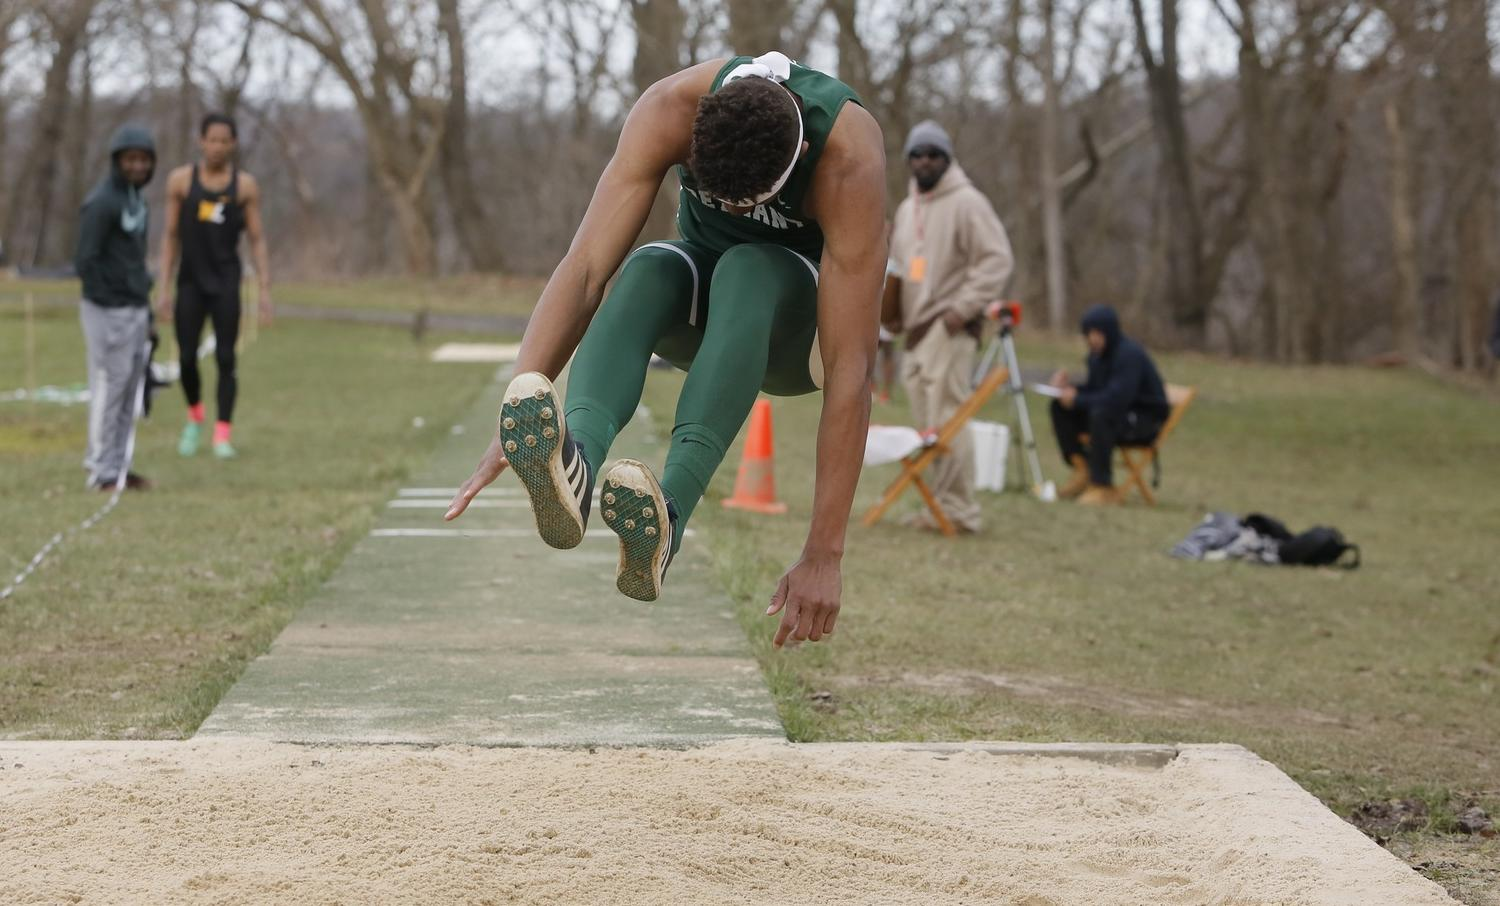 Sallah-Mohammed named USTFCCA All-Region in two events